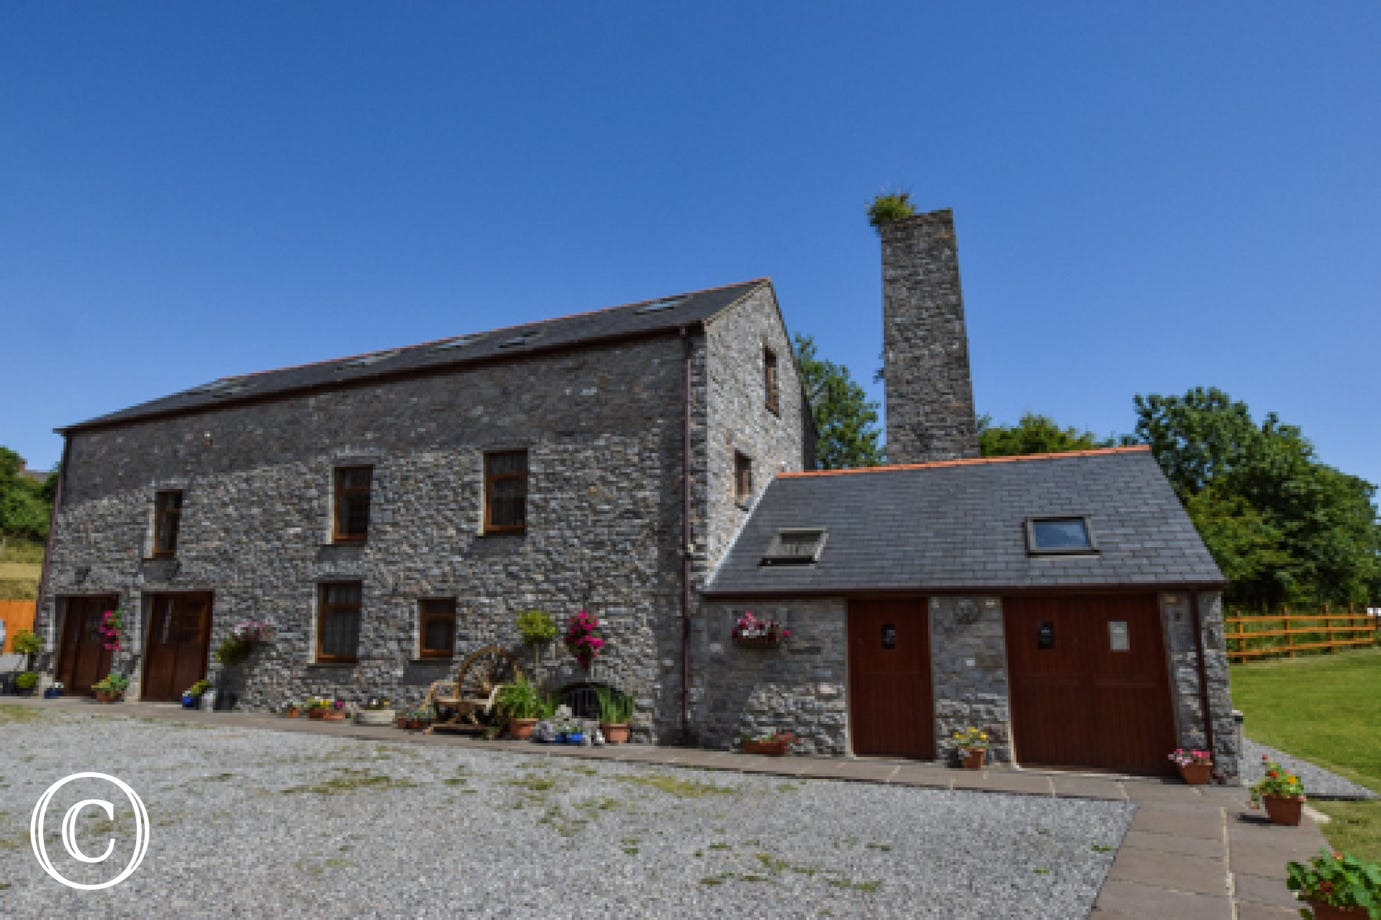 self catering Pembrokeshire accommodation is within a converted 17th century water mill in Pembroke.